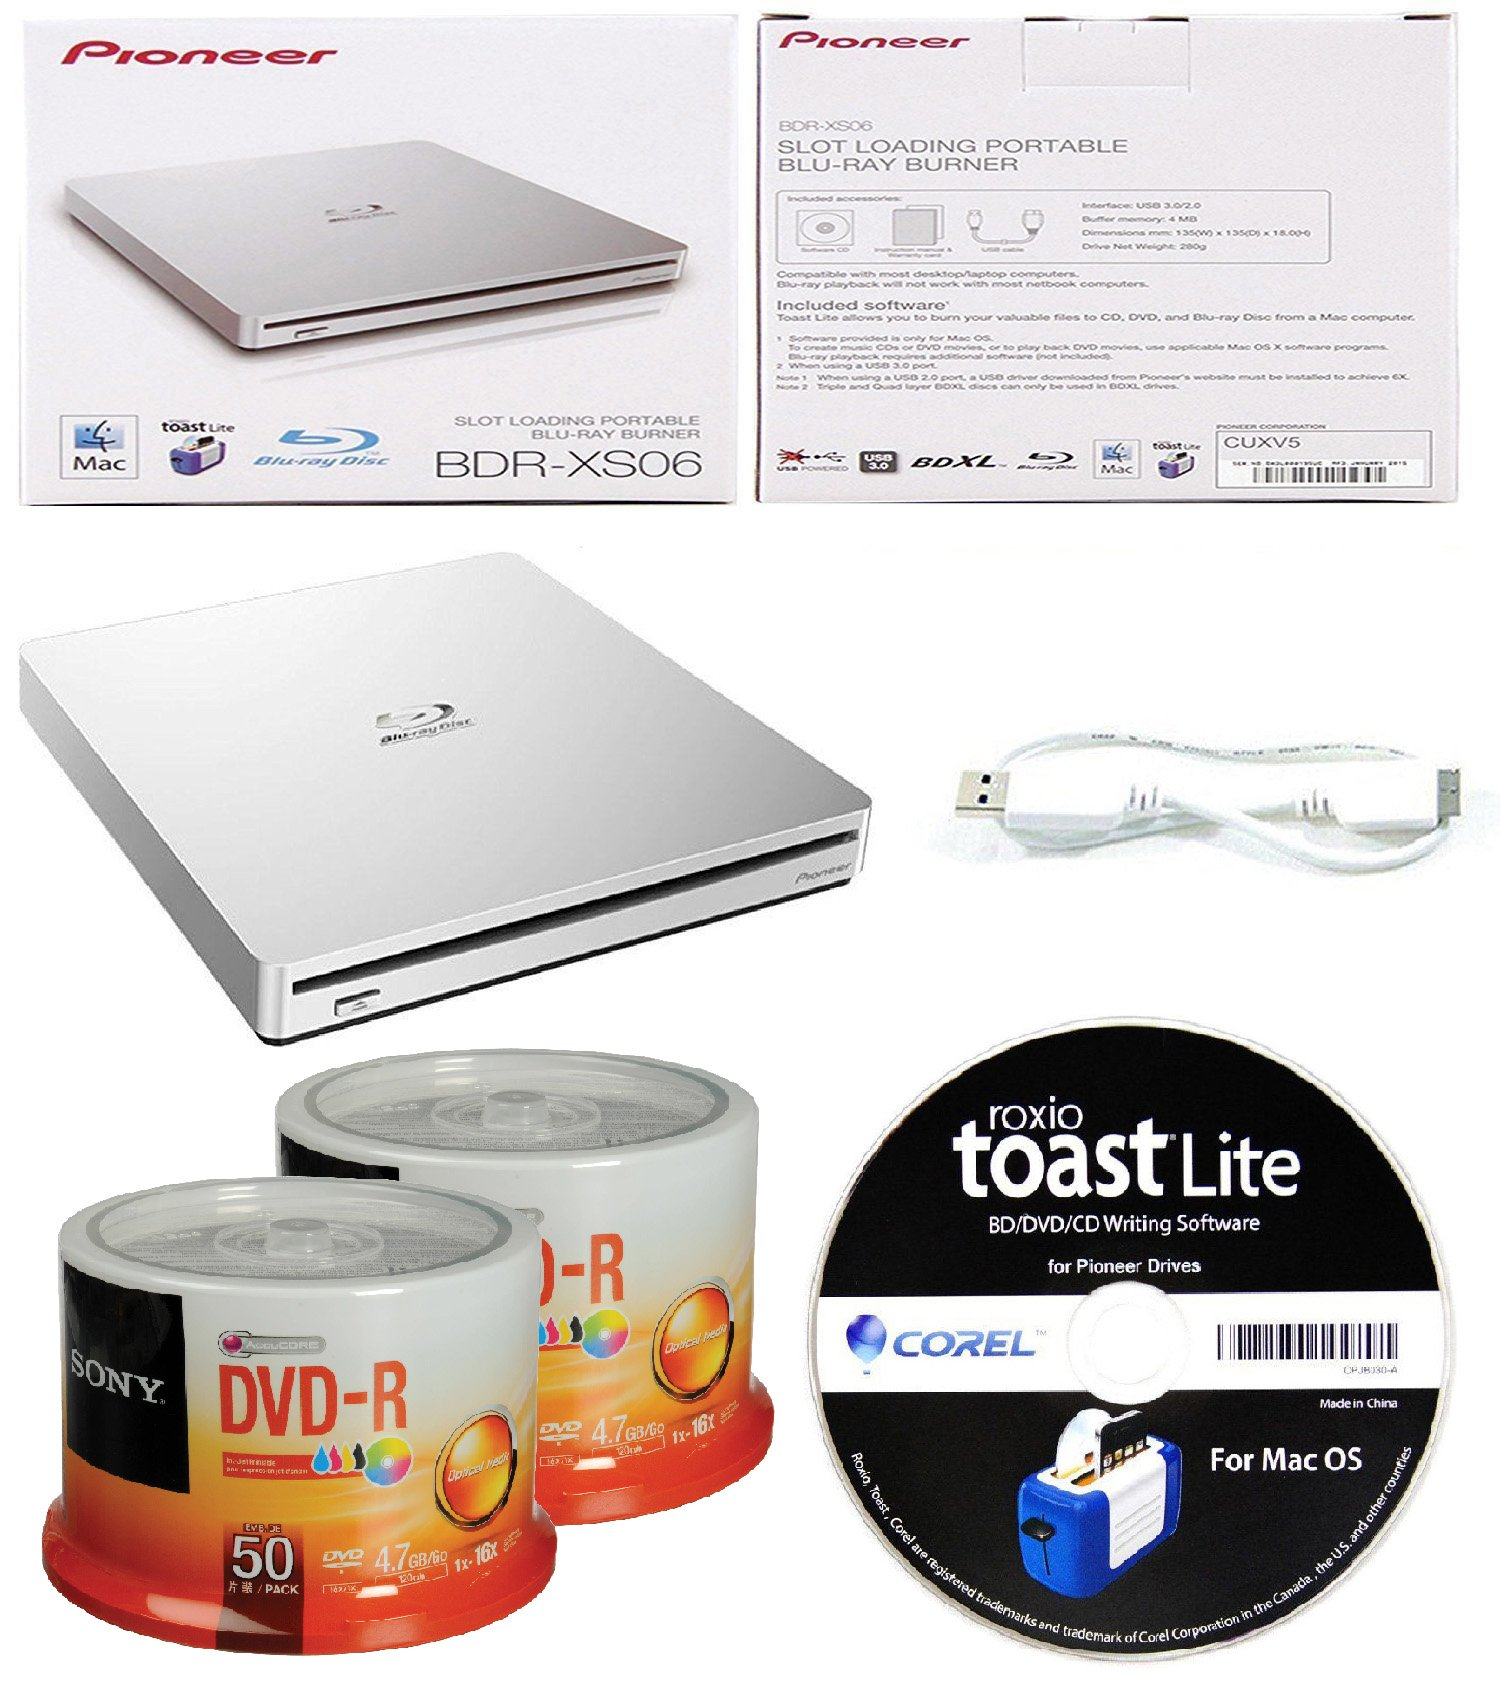 Pioneer 6x BDR-XS06 Slim Slot Portable External Blu-ray BDXL Burner, Roxio Toast Lite Software and USB Cable Bundle with 100pk DVD-R Sony Accucore 4.7GB 16X White Inkjet Printable